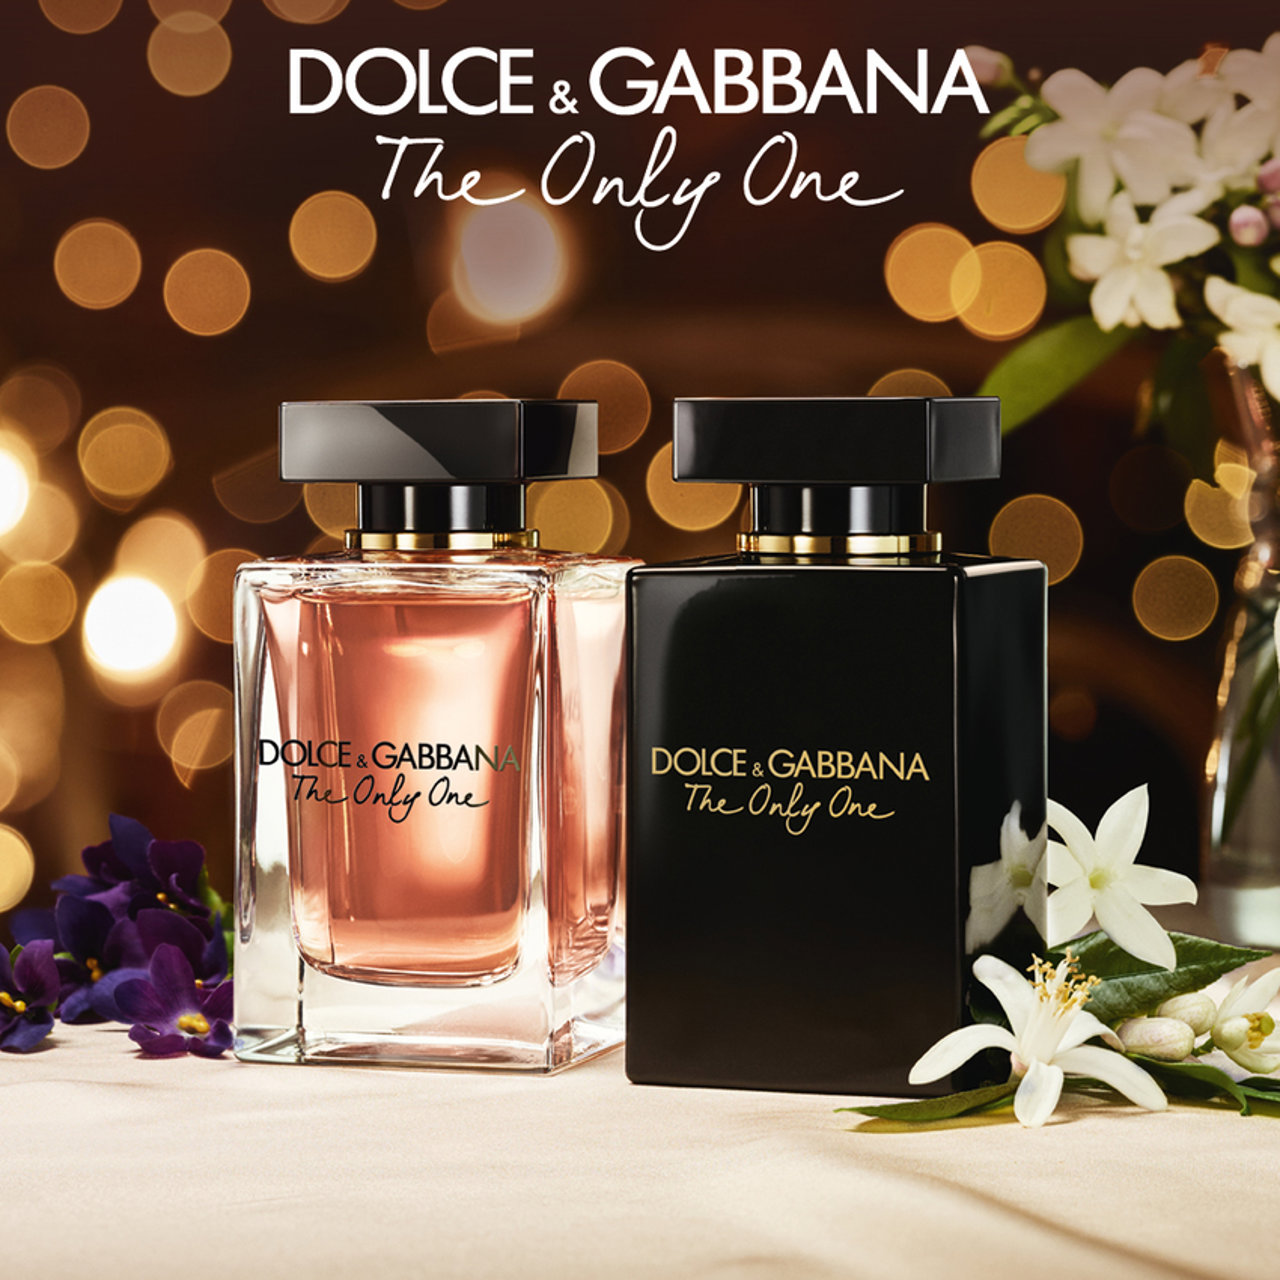 /dolce-gabbana/the-only-one